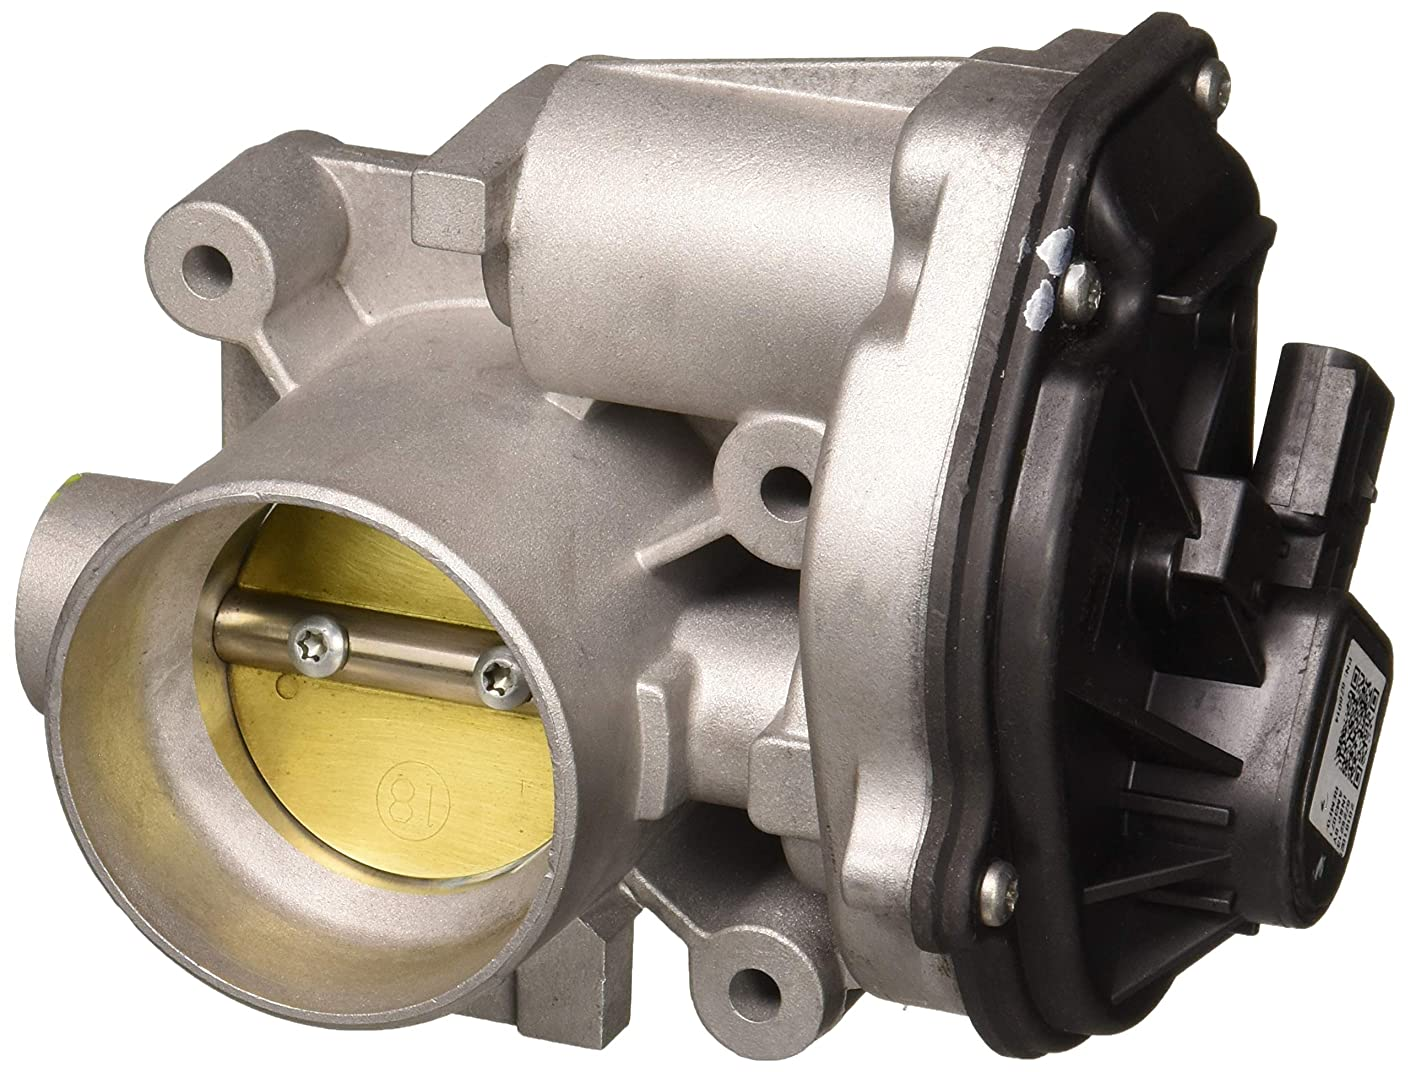 A1 Cardone 67-6014 Remanufactured Throttle Body, 1 Pack